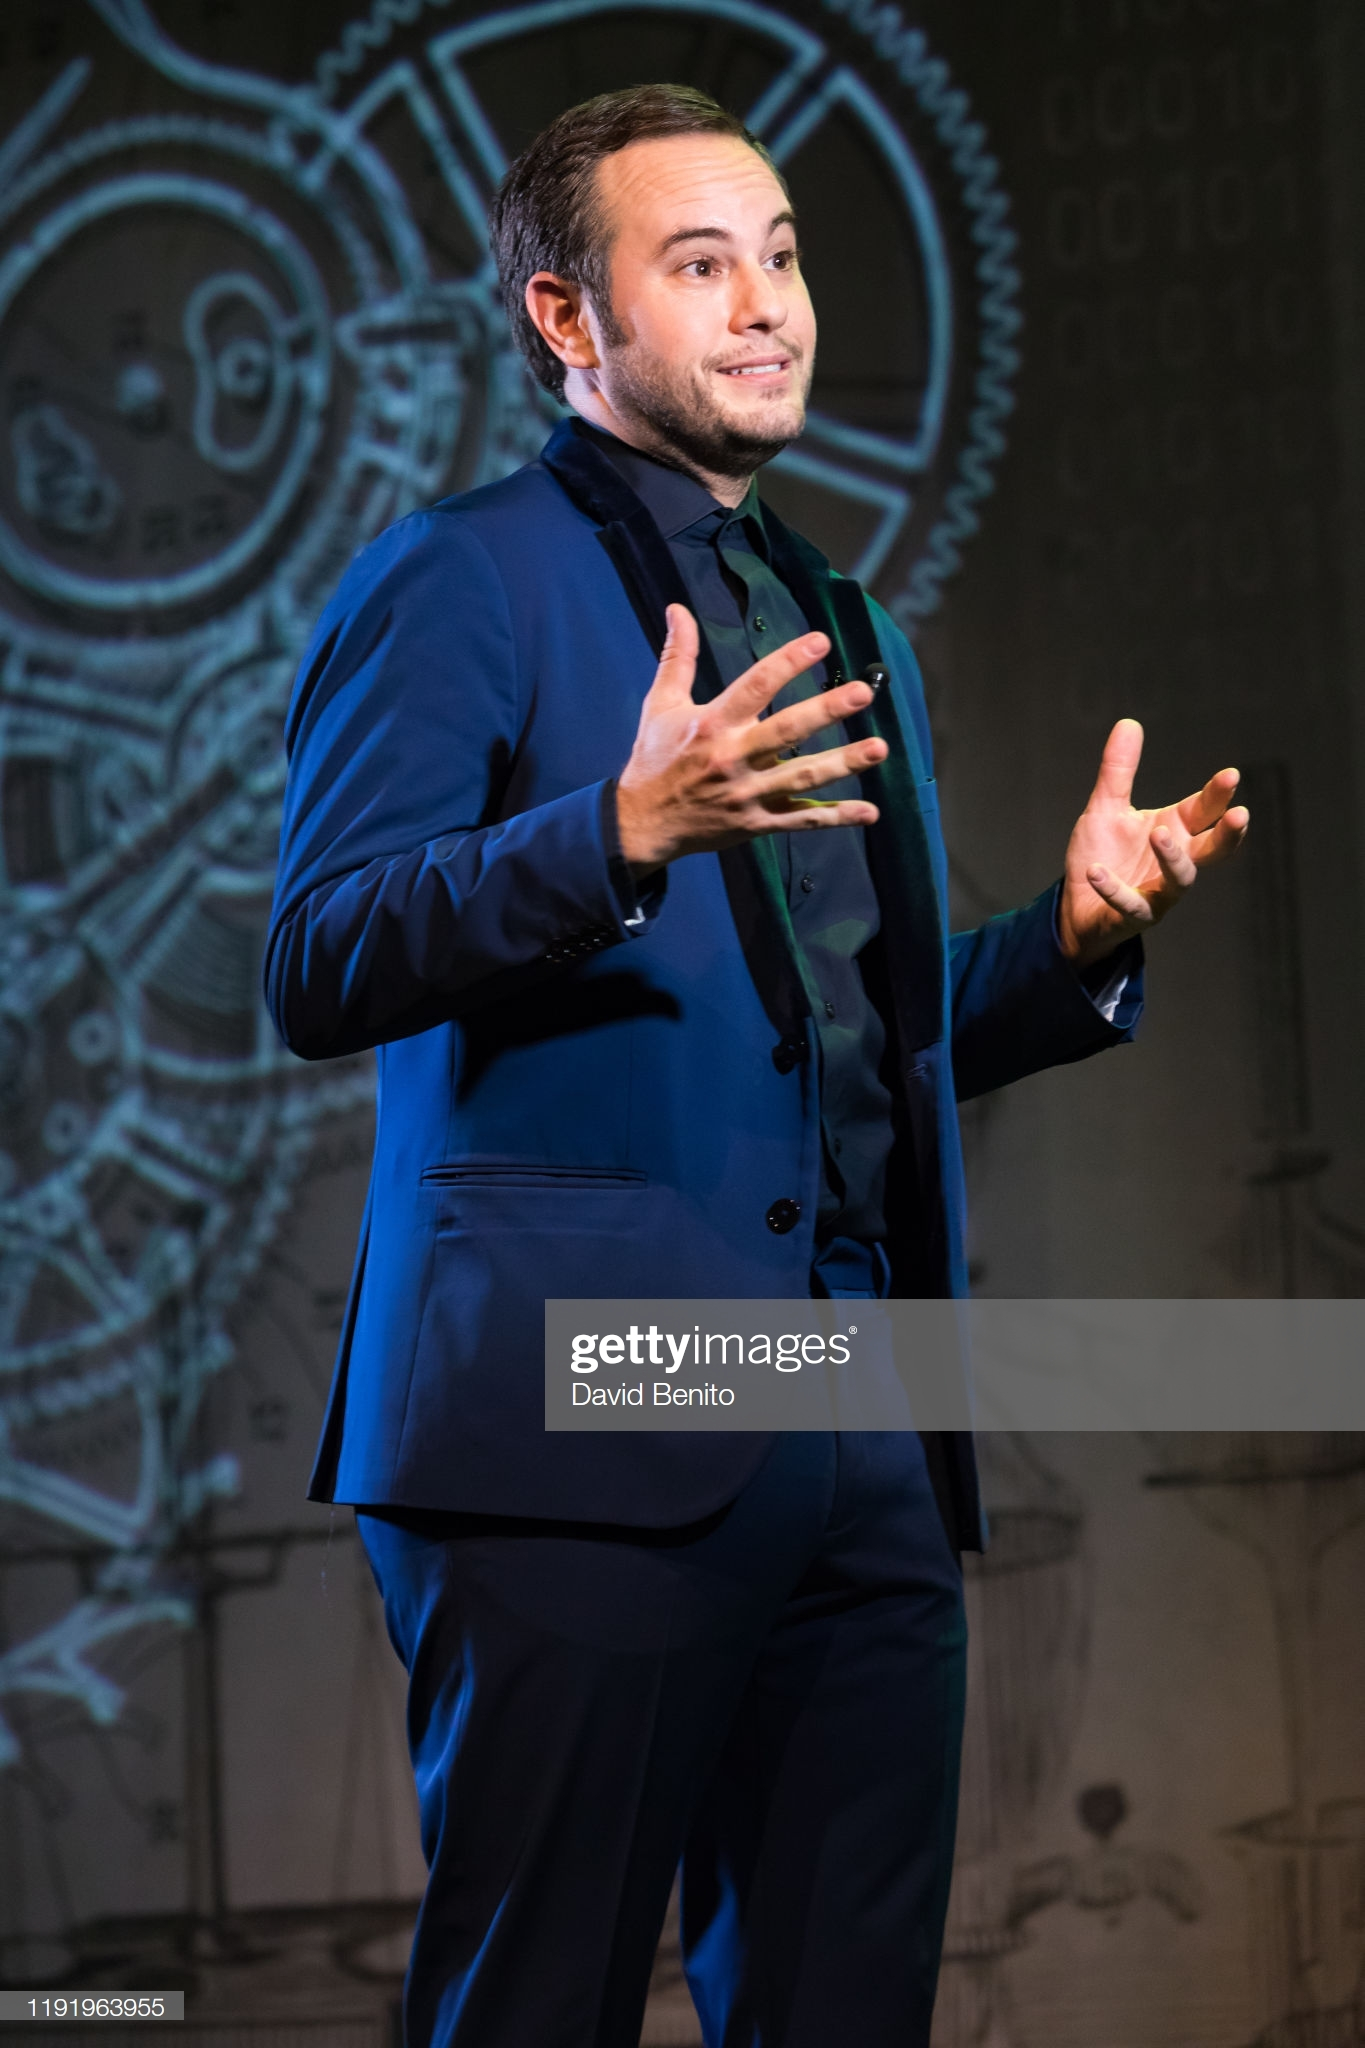 gettyimages-1191963955-2048x2048